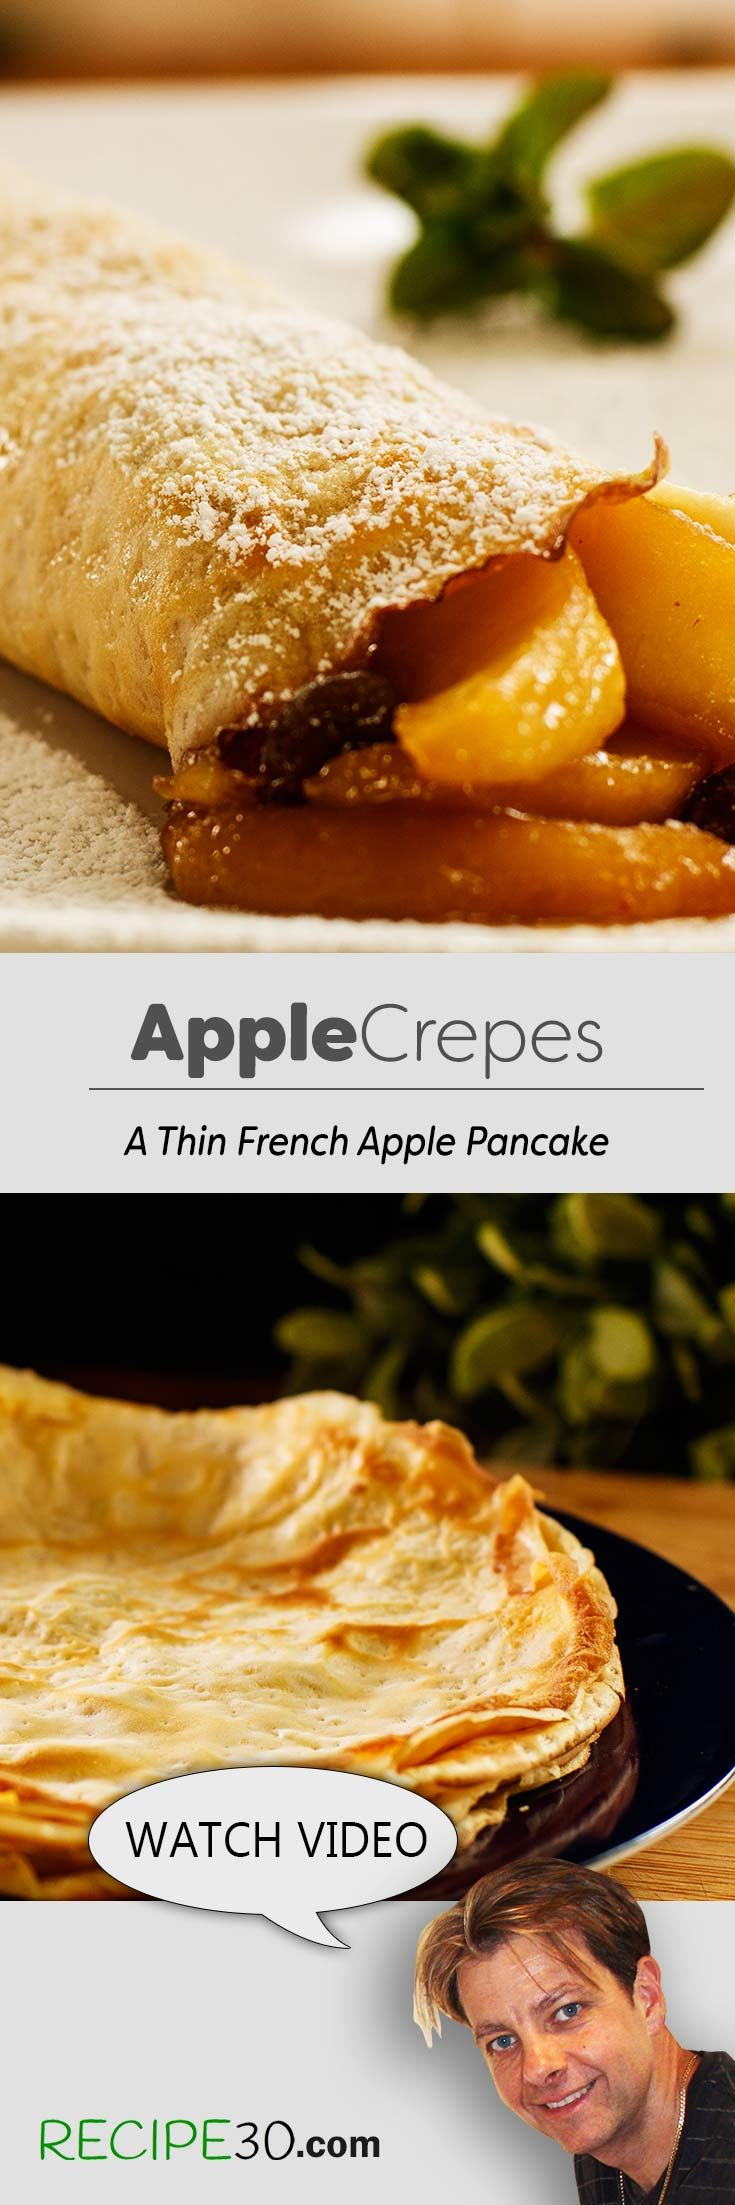 This French apple crepe or thin pancake recipe is similar to crepes Normandes. Apples are cooked in a butter caramel sauce, with raisins and cinnamon and filled inside a rolled thin crepe. Enjoy the recipe and see the streets of Paris.